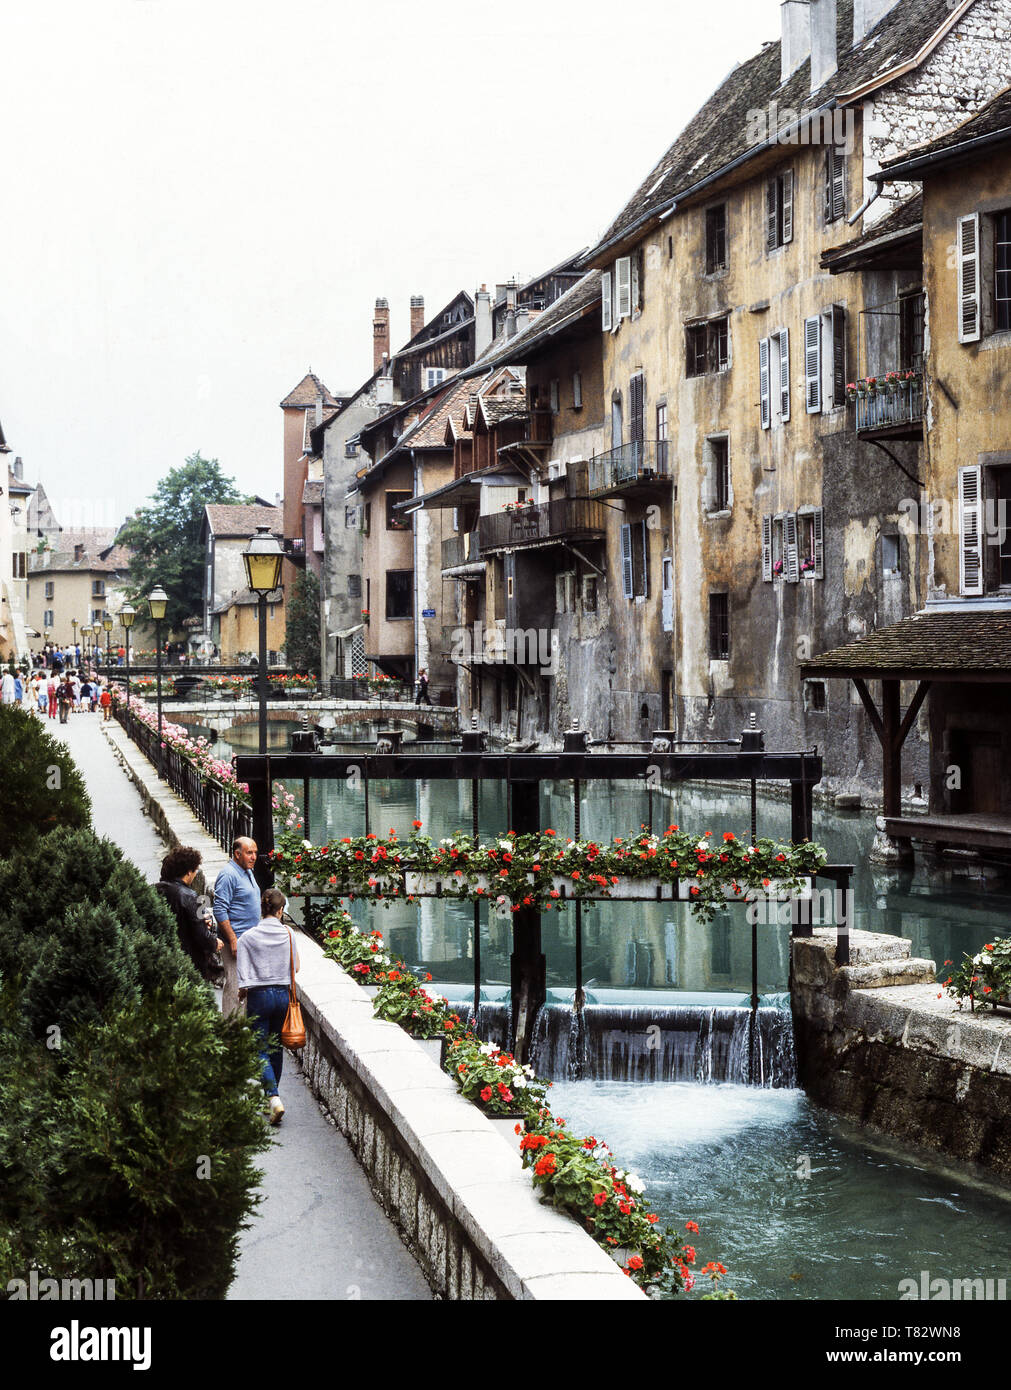 The medieval town of Annecy (Dept. Haute-Savoie) - Stock Image